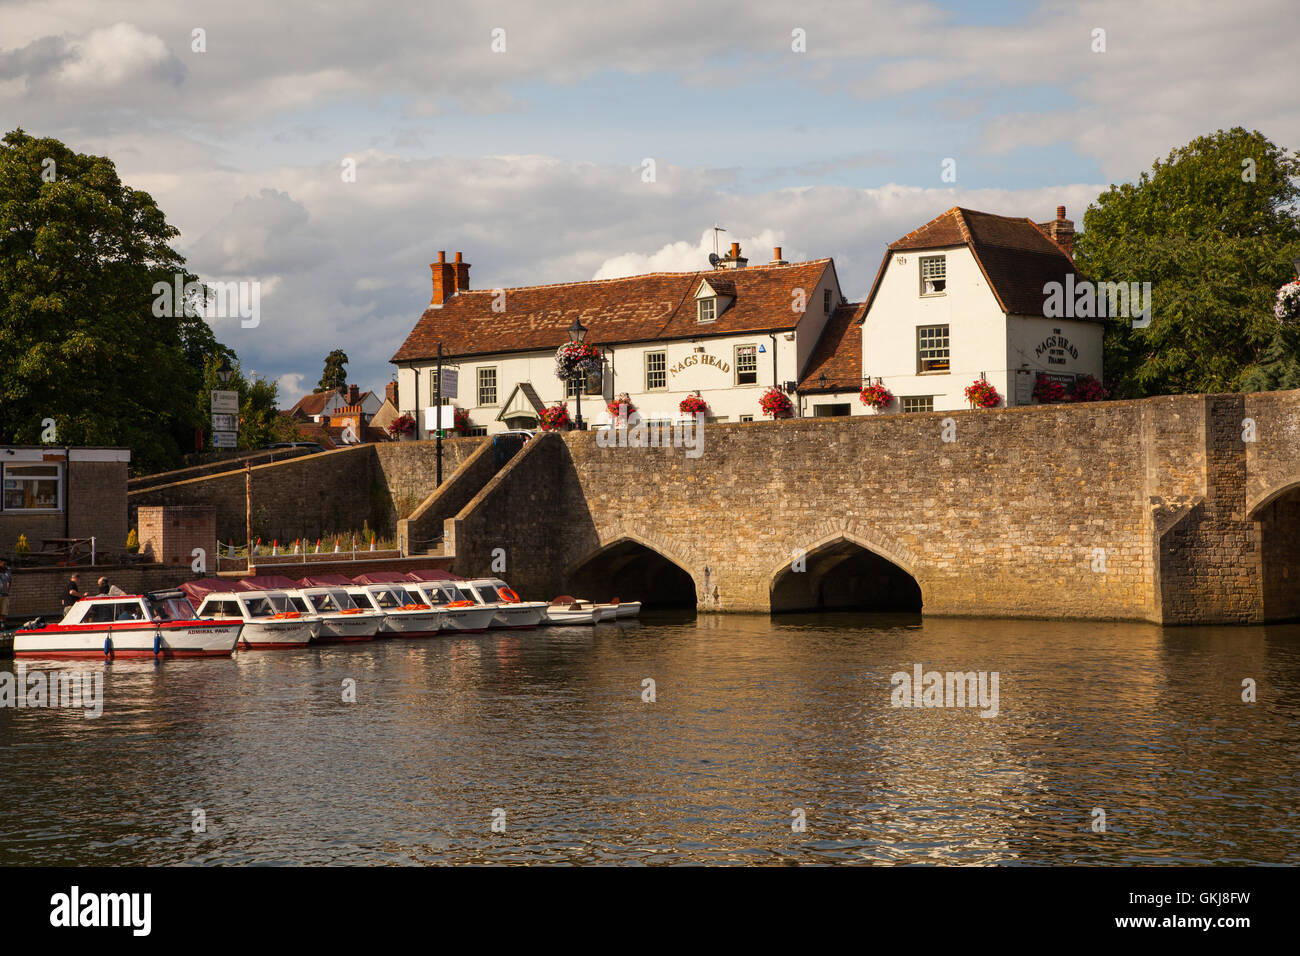 View Of The Nags Head Hotel From The River Thames At Abingdon Stock